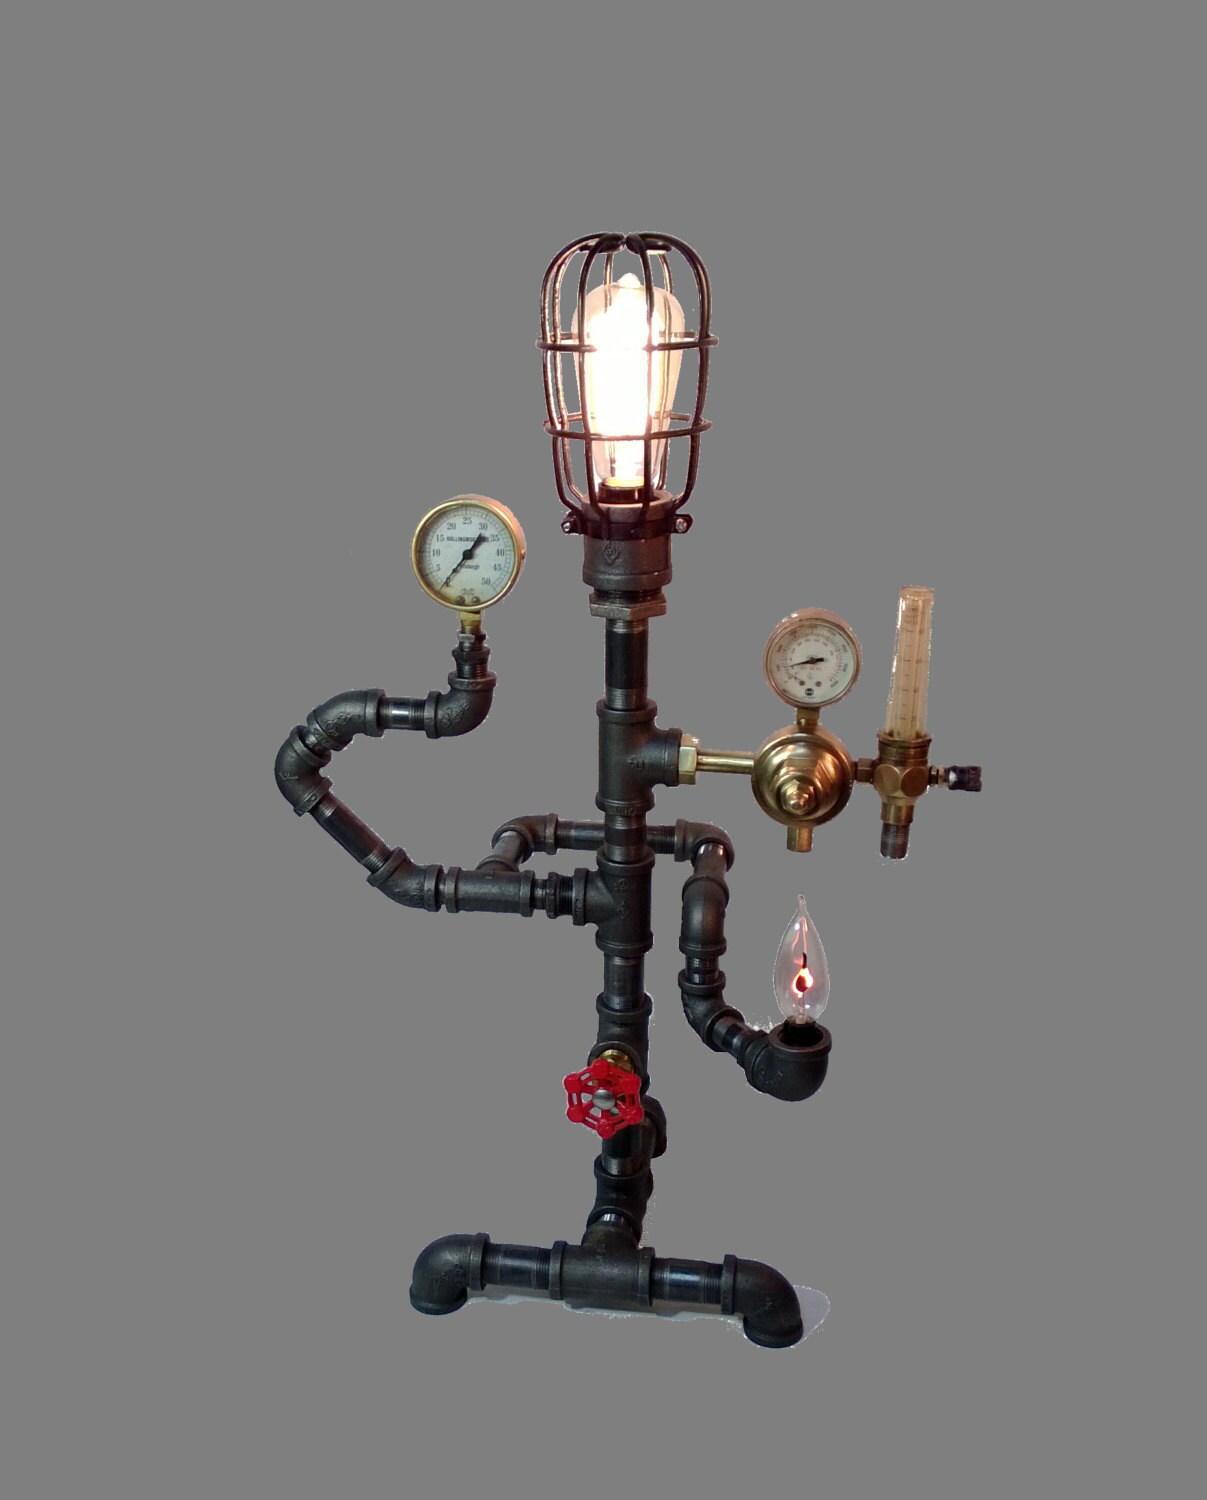 A custom-made steampunk lamp - PipeLightArt